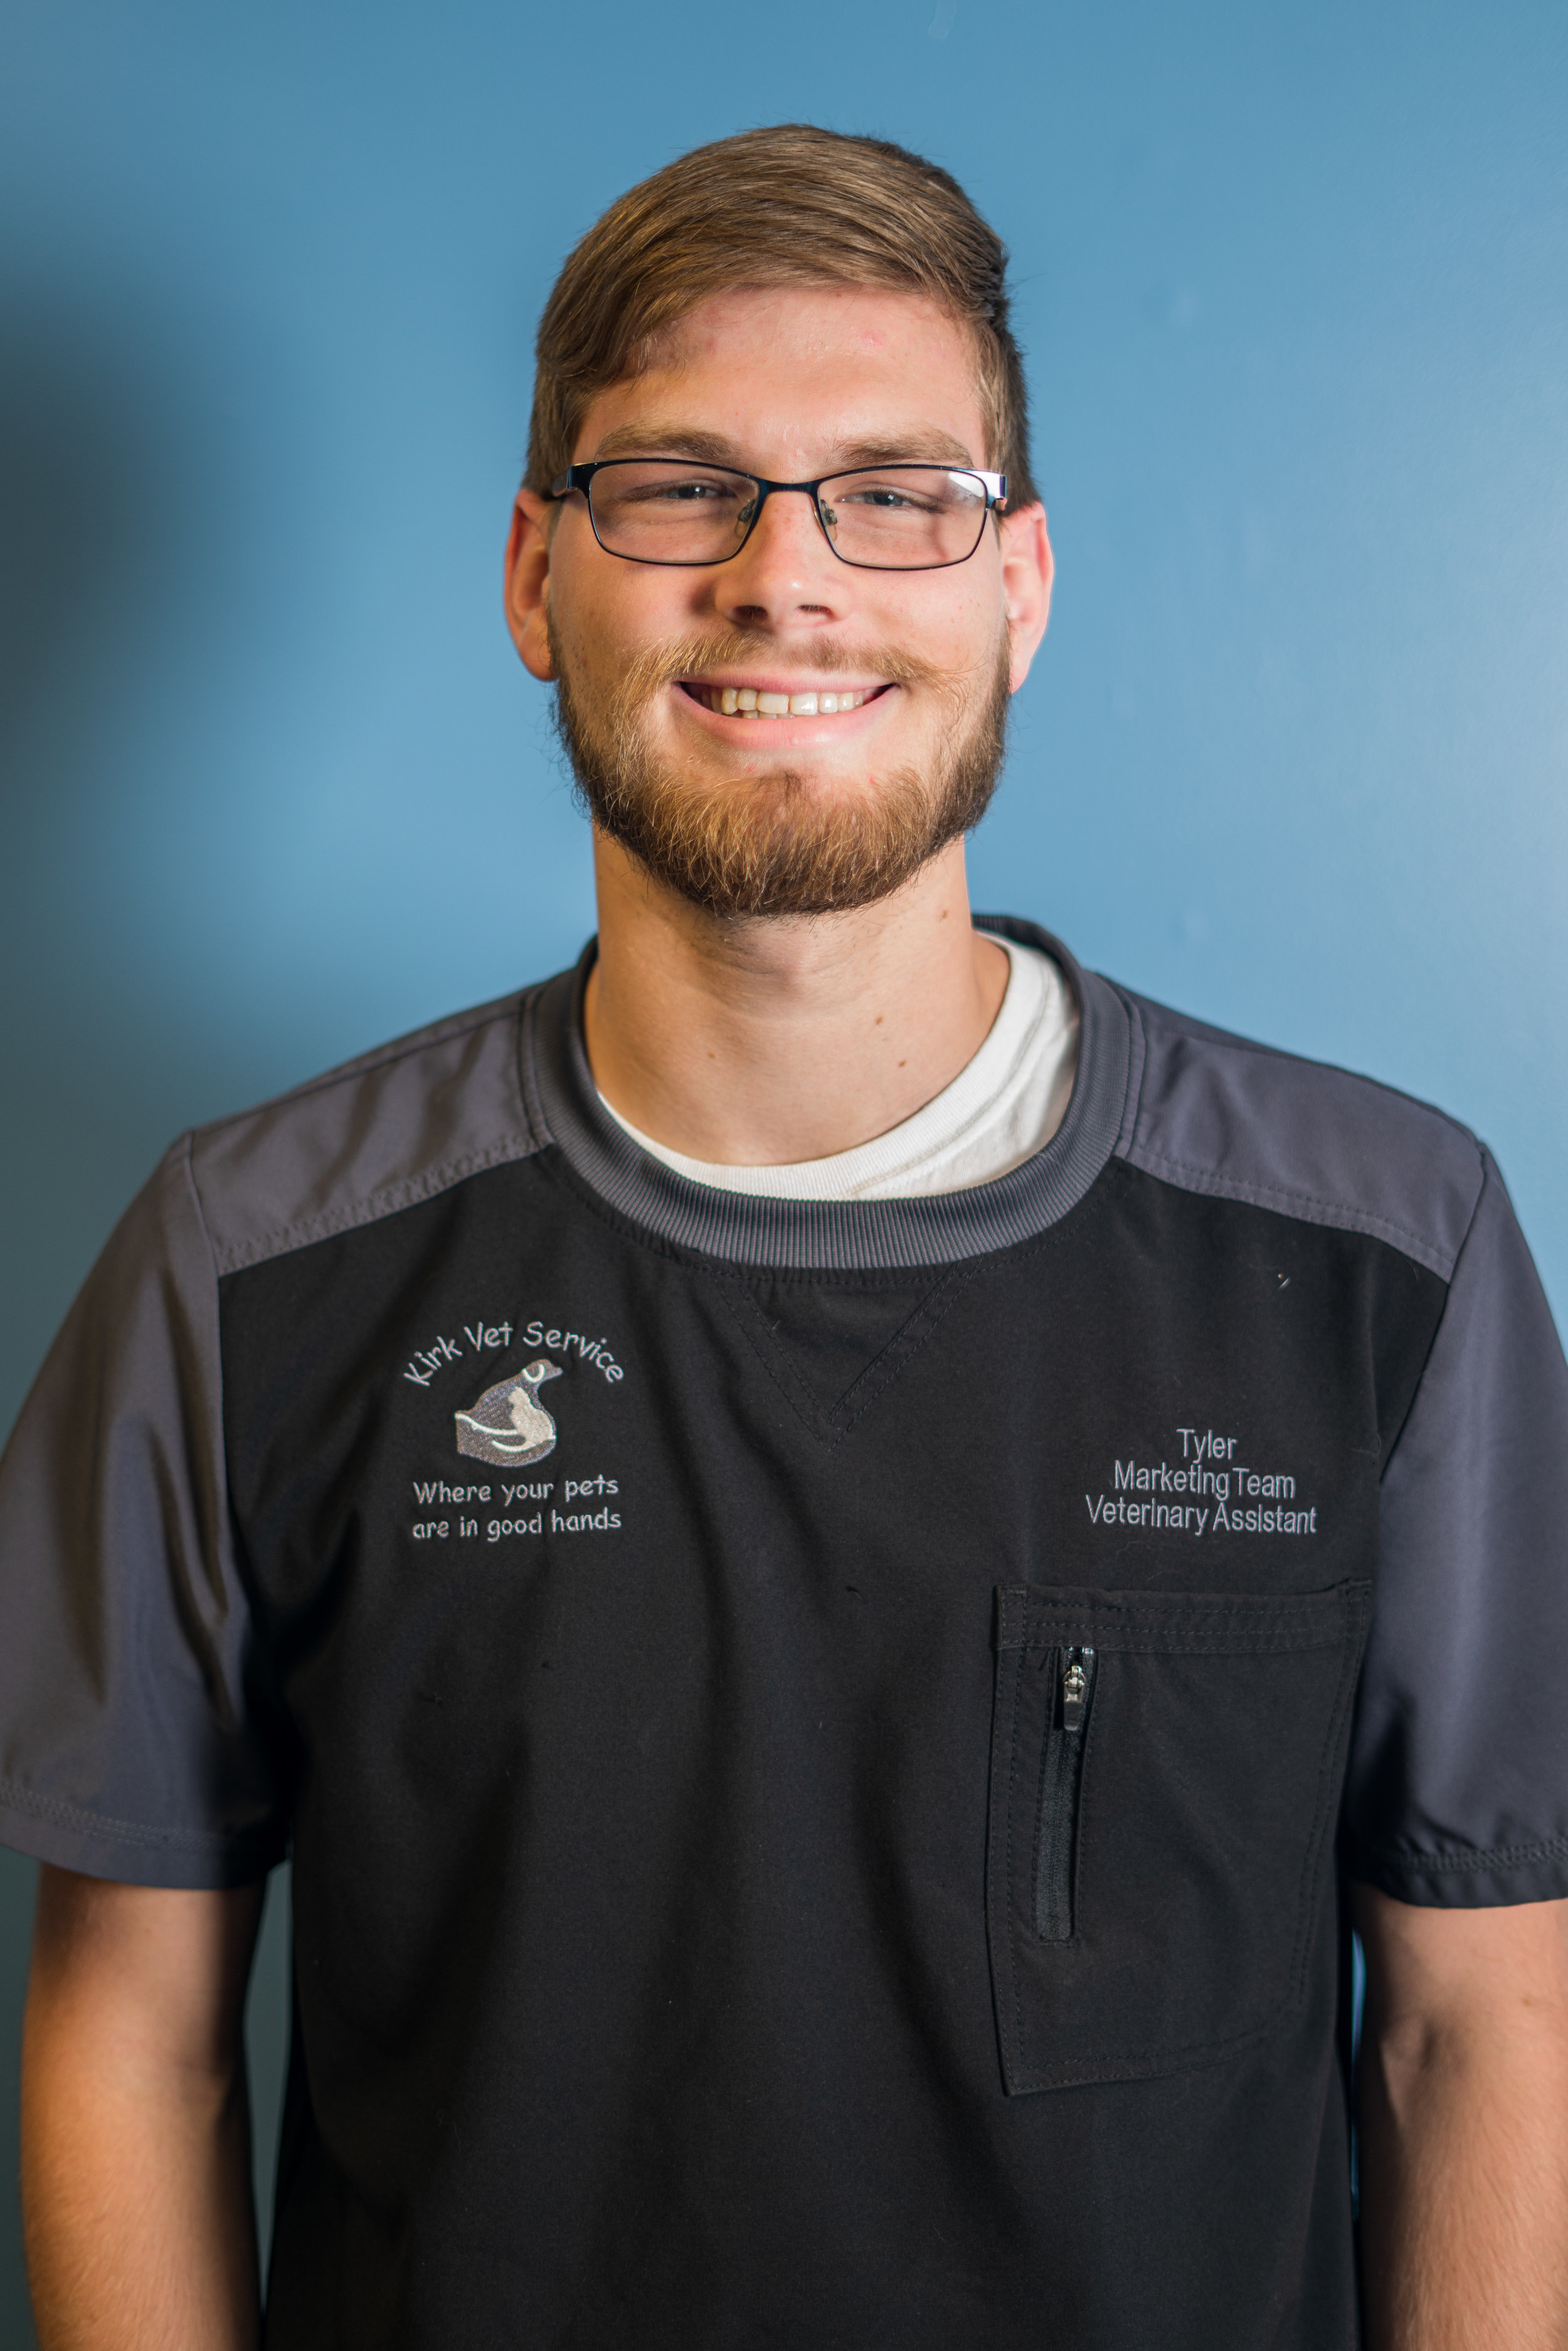 Tyler Kirk - VETERINARY ASSISTANTTyler is the son of Dr. Kirk. Over the years he has spent a lot of time at the clinic. Tyler joined our team as an employee in May 2018. He spends his summers working as a vet assistant at Kirk Vet Service as well as riding along with large animal veterinarians. During the school year, he works as a licensed pharmacy technician at Walmart in Lafayette. He studies at Purdue University, where he is majoring in Biology. Tyler plans to apply into the Purdue School of Veterinary Medicine in 2020. He would love to join his mother in her small animal practice and add in large animal service.